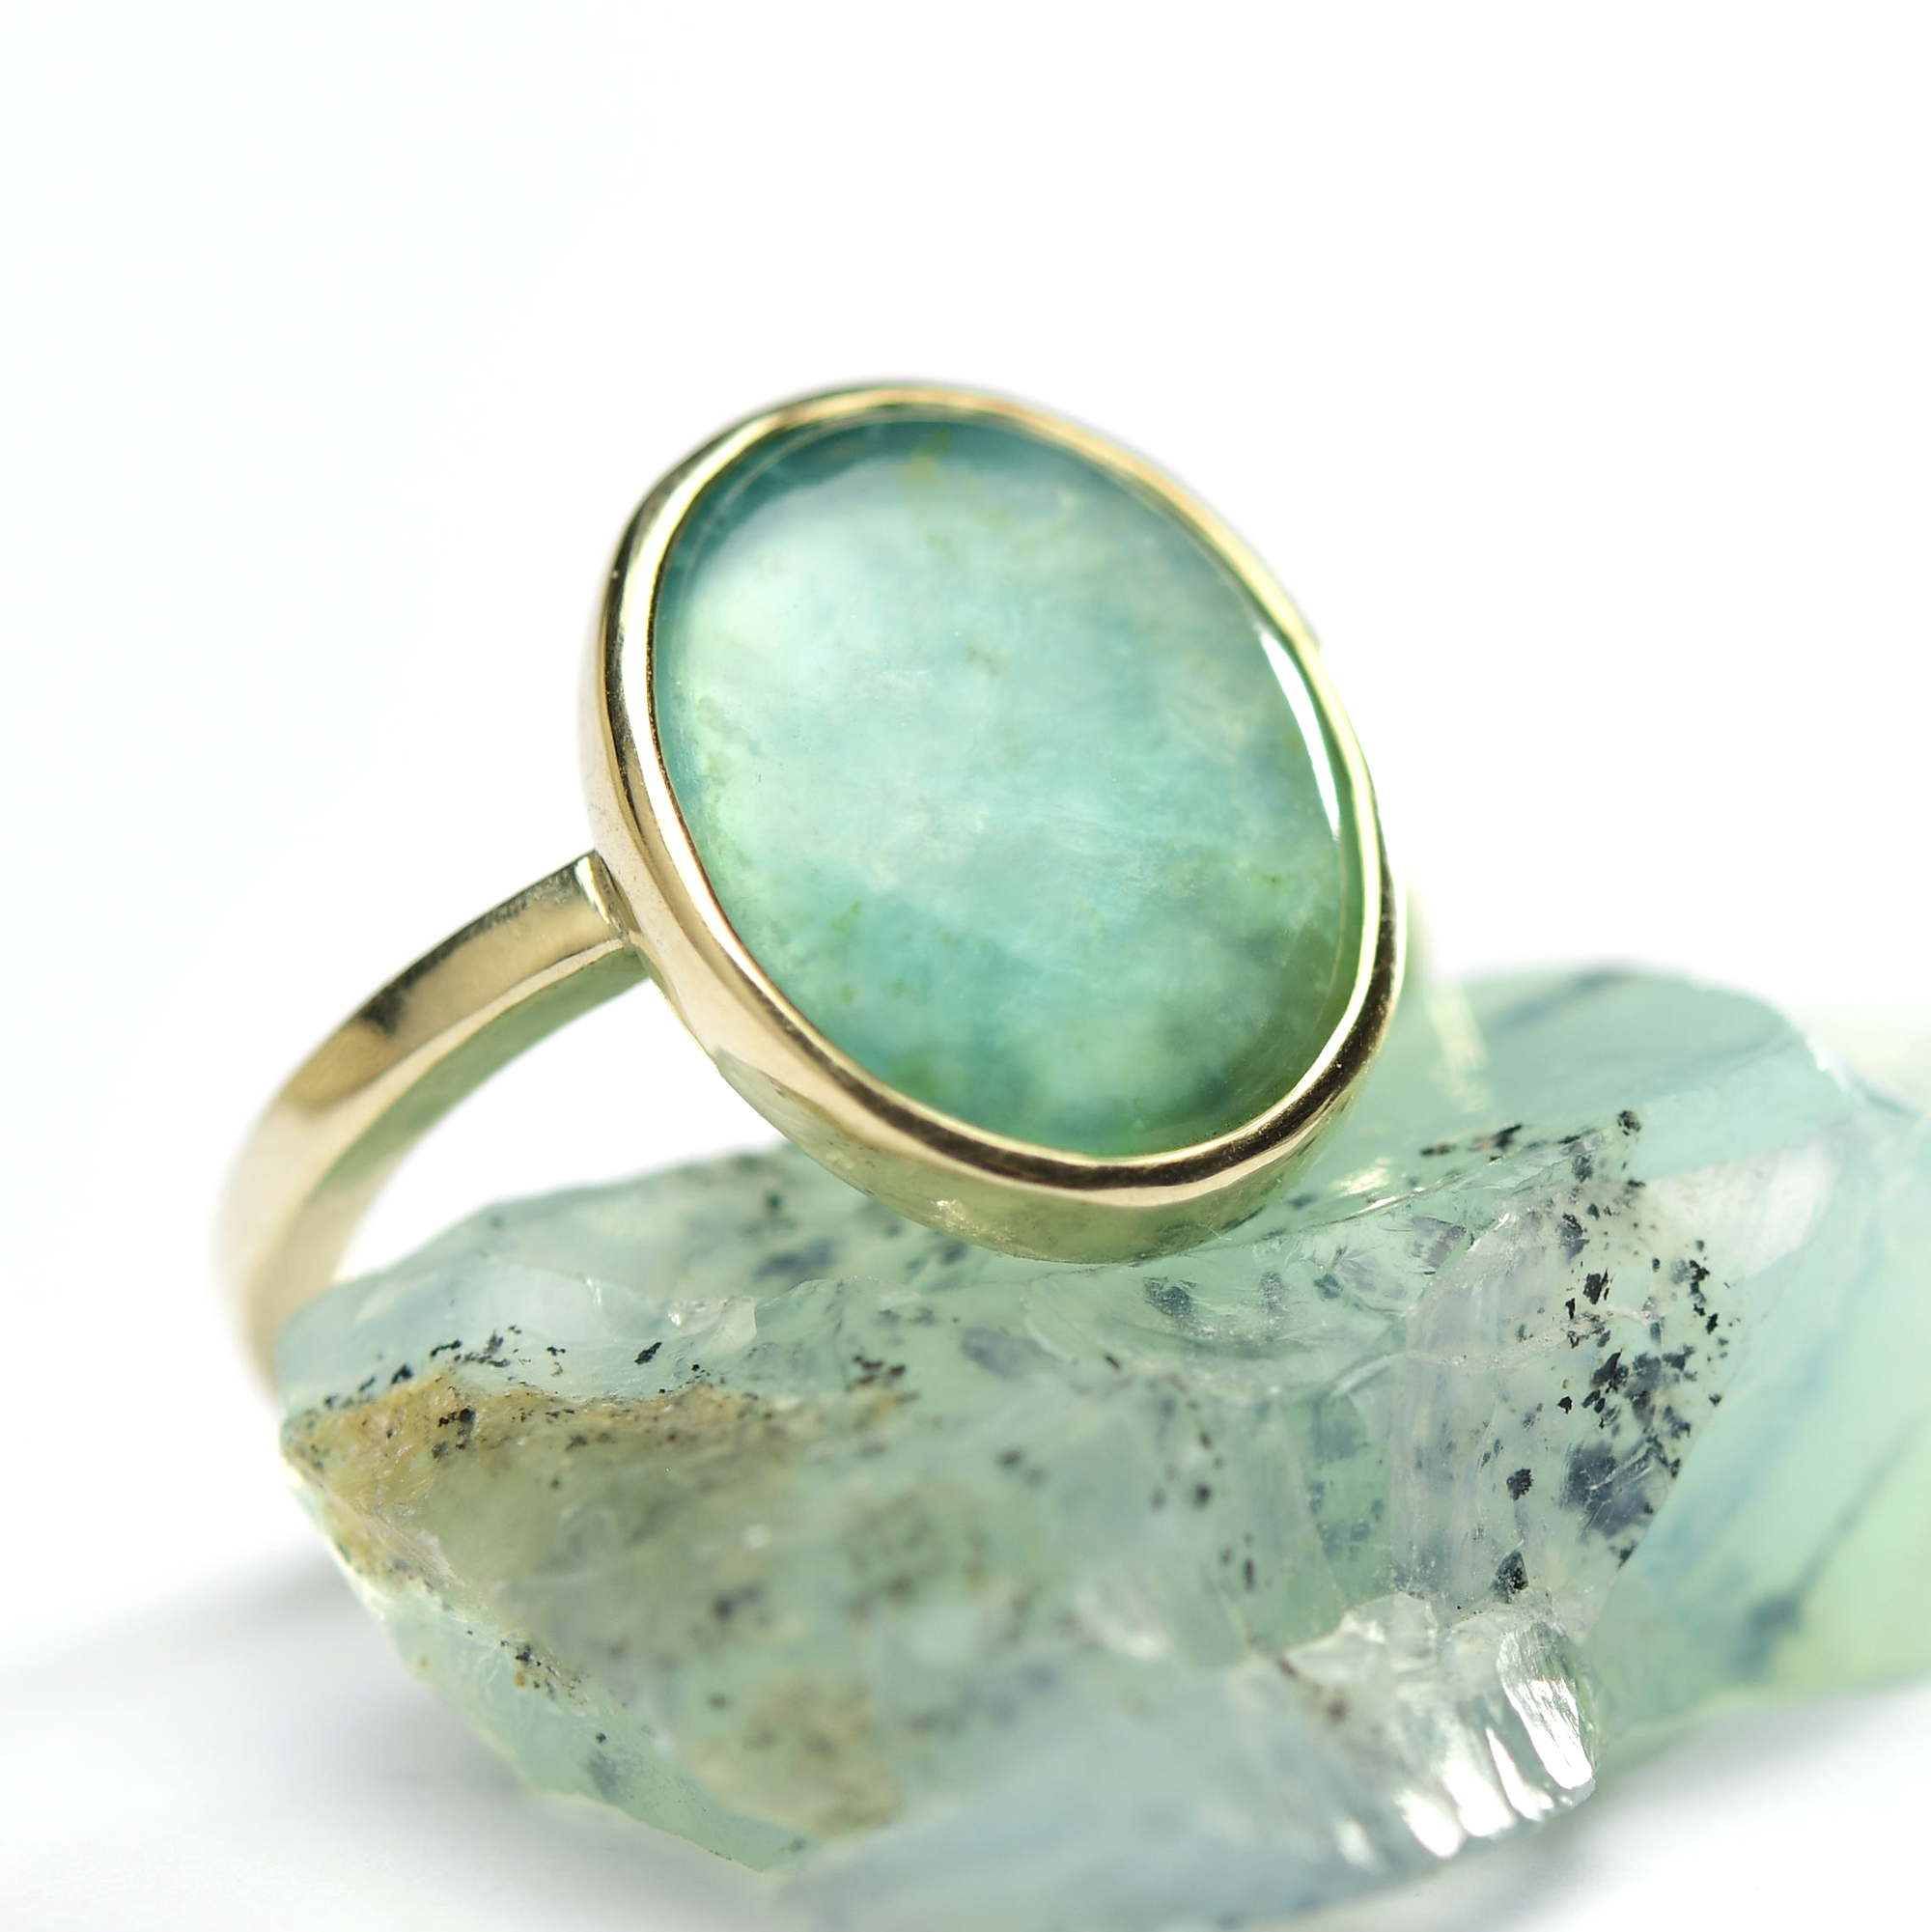 blauwe andes opaal gouden ring